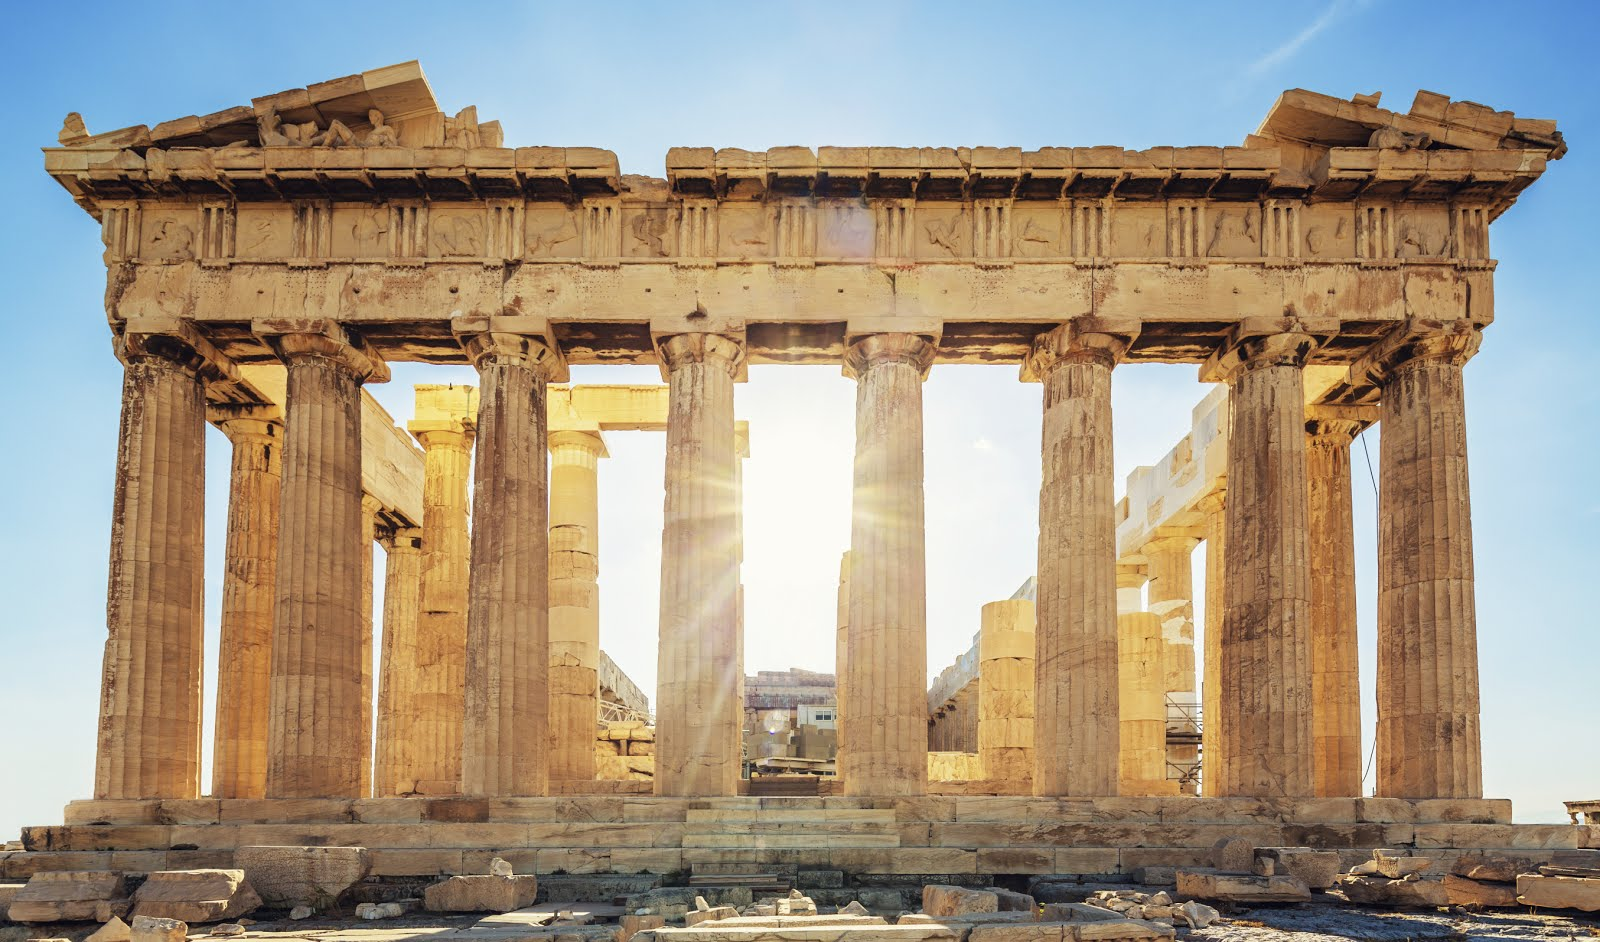 DISCOVER ATHENS AND THE ACROPOLIS